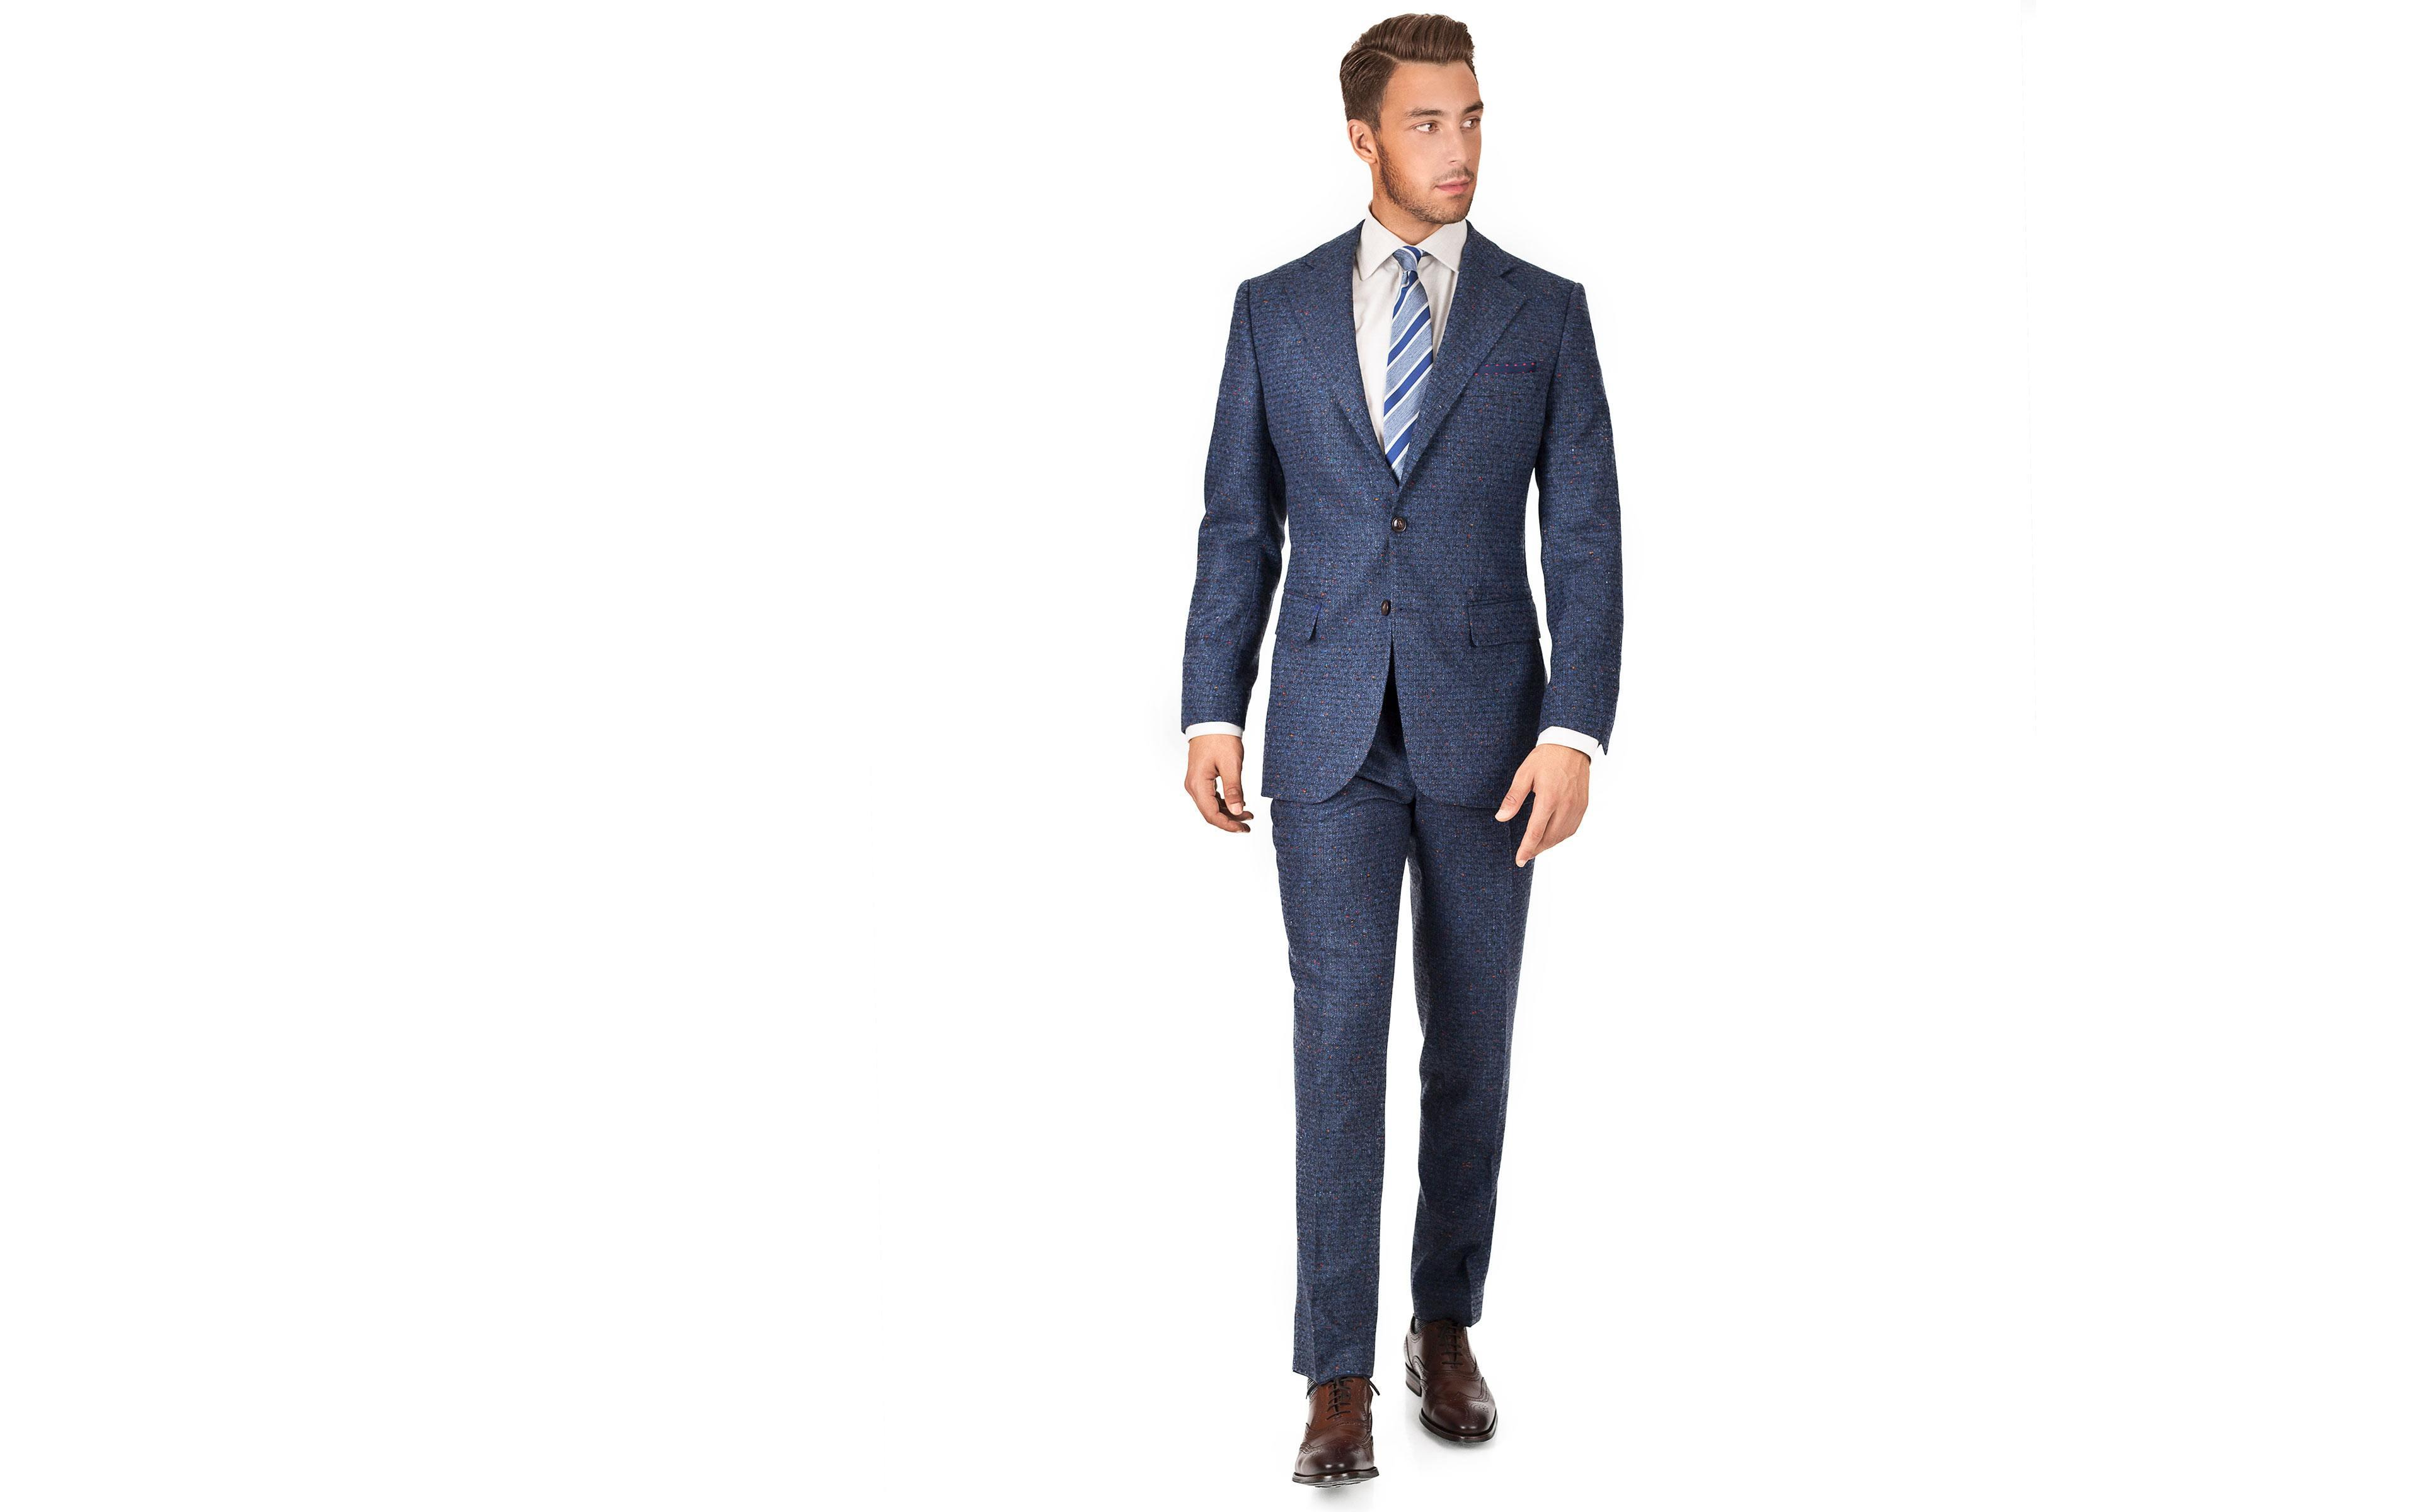 Suit in Blue Donegal Shadow Tweed